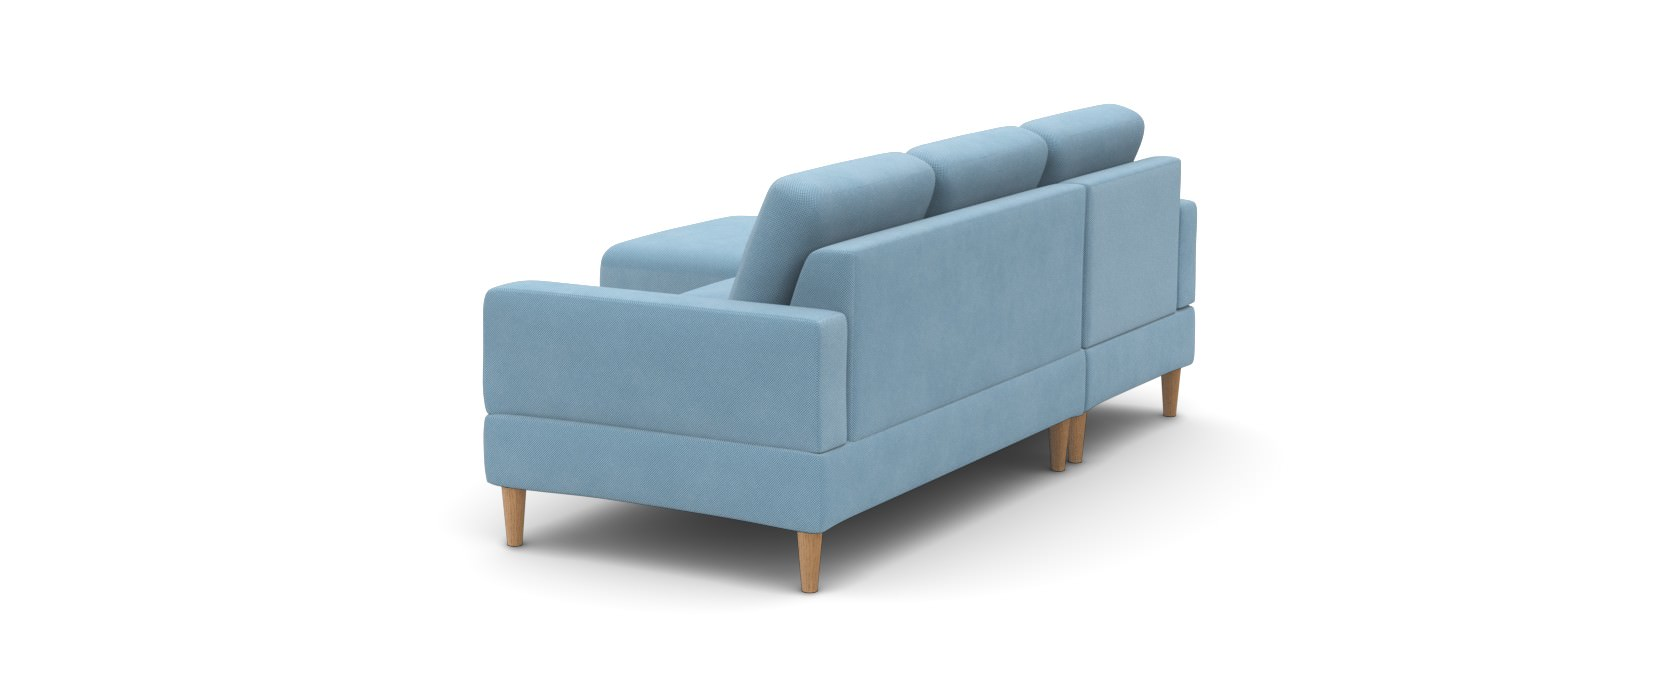 Sofa mit Chaiselongue Manfredo